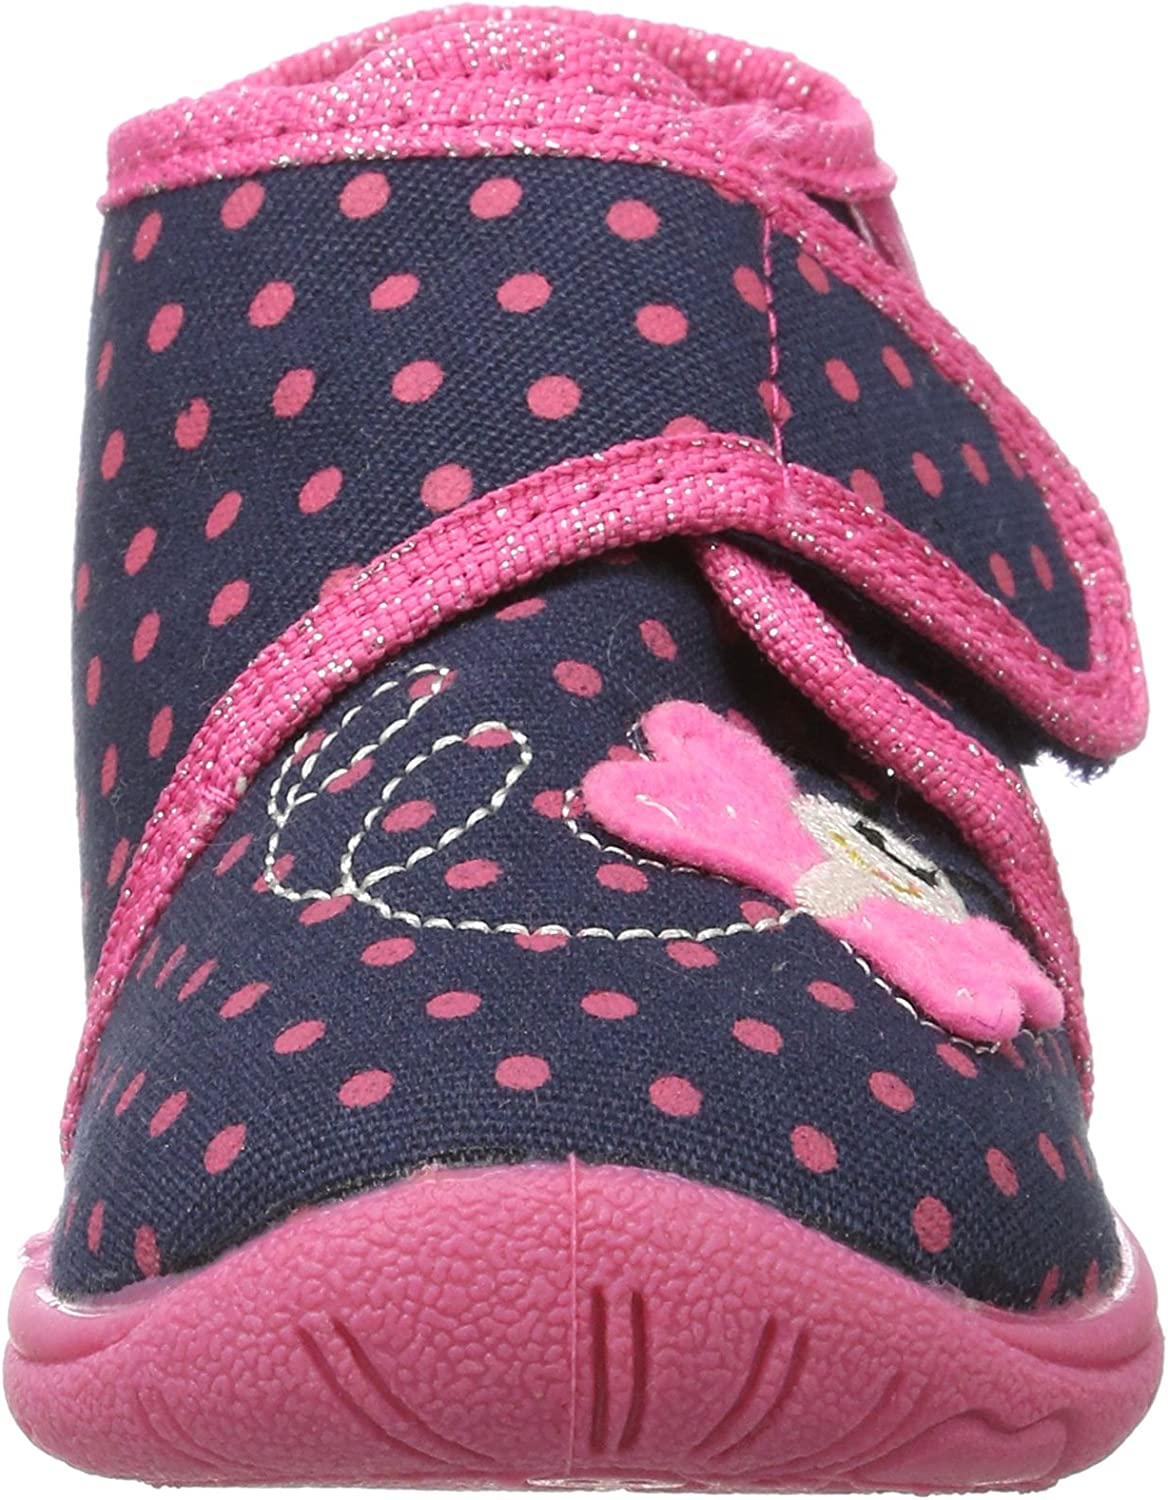 Beck Jolly Chaussons Montants Fille